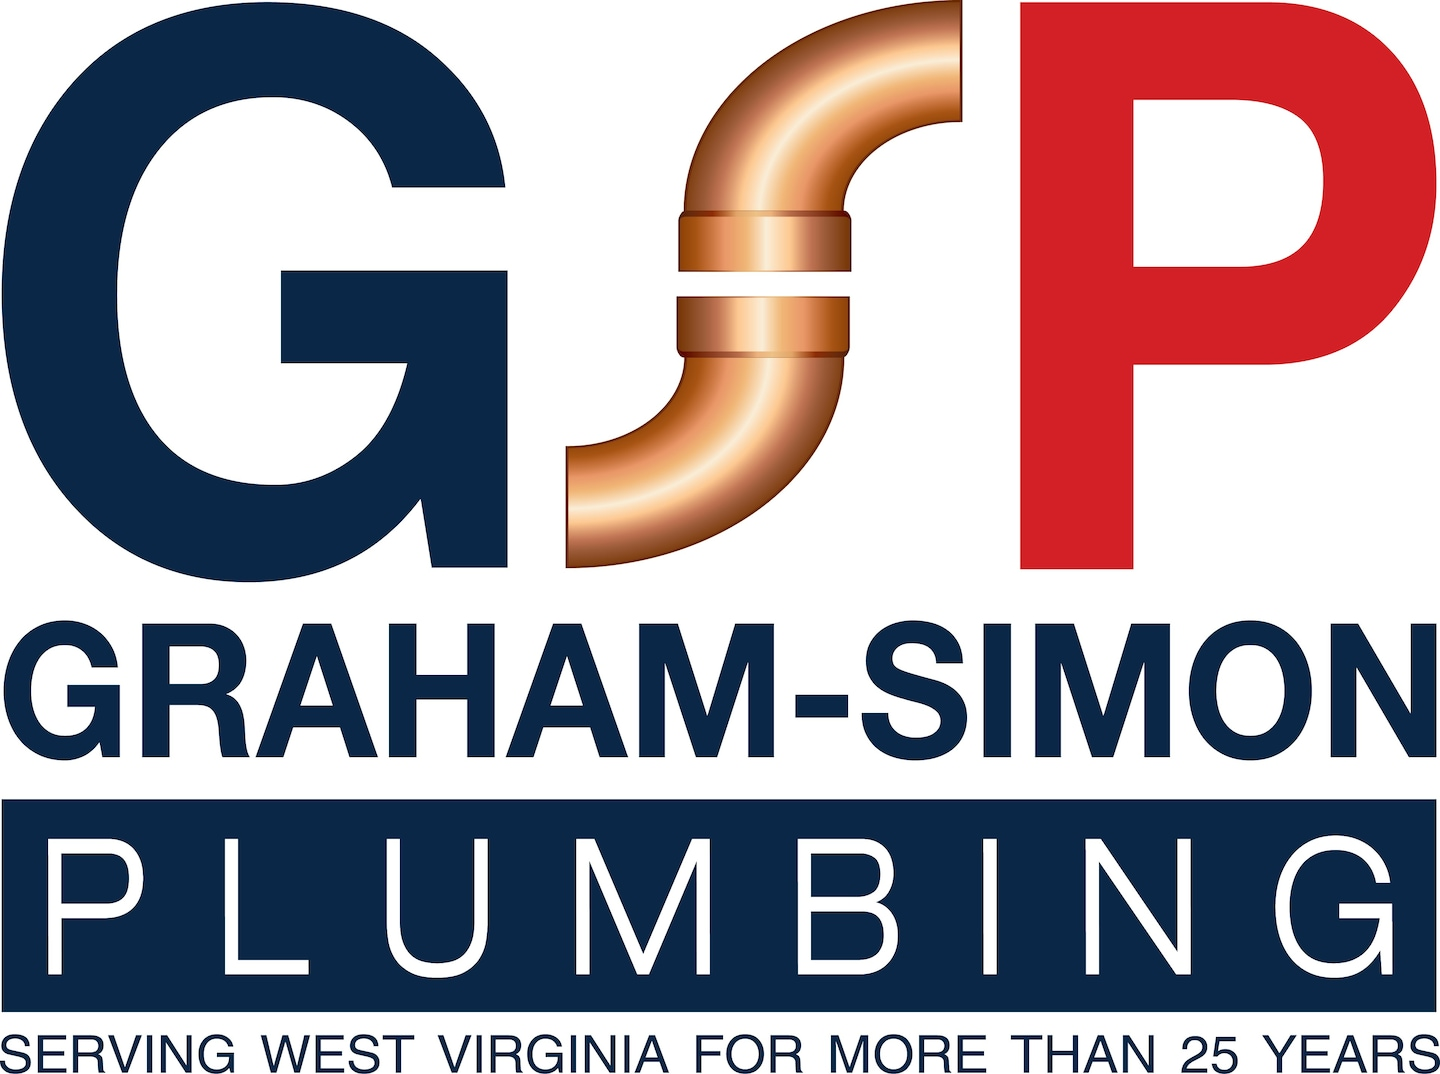 GRAHAM-SIMON PLUMBING CO LLC